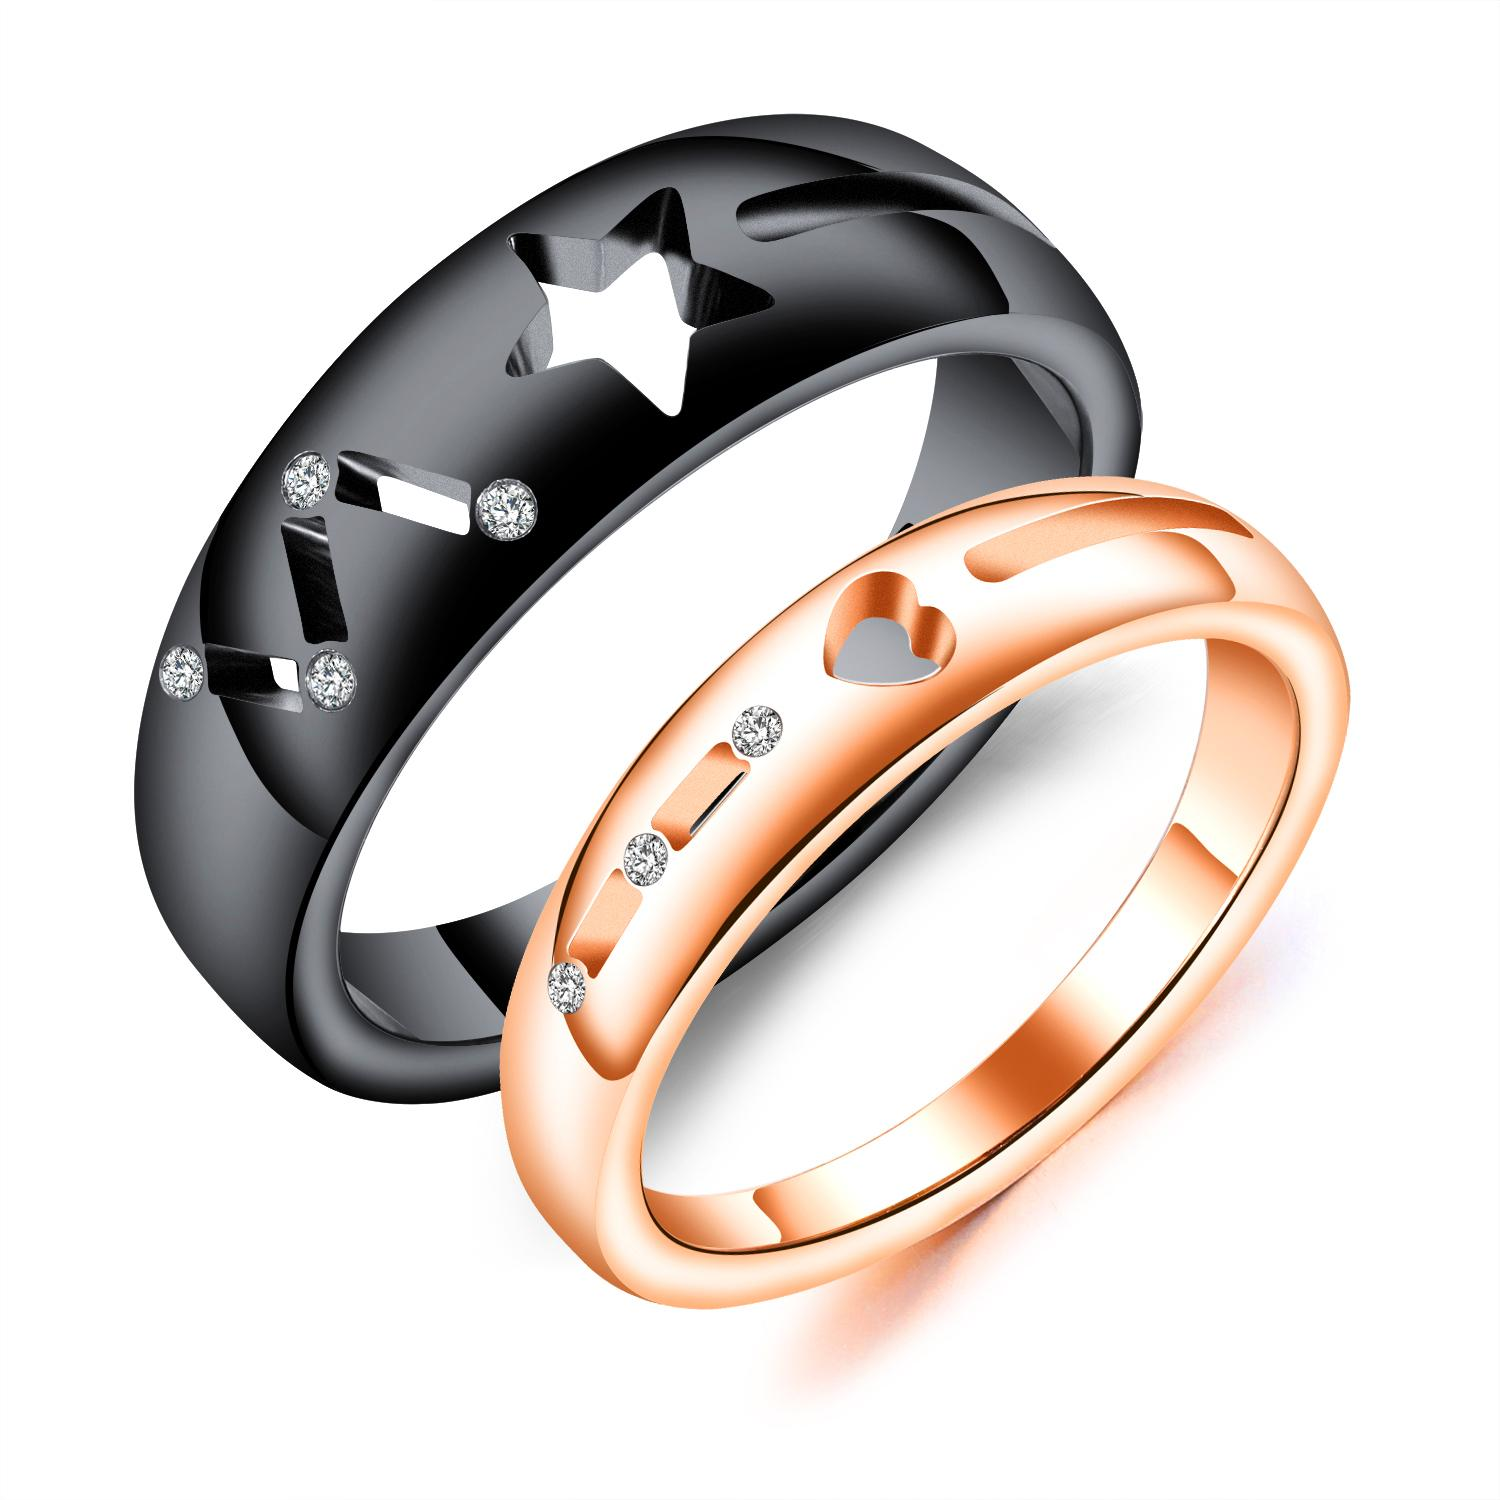 favorite hands them so matthews stacy seemed specifically be because by christopher design tracy more connected us have made engagement wedding couple special me and came to rings help stacey volume they bands for much it my